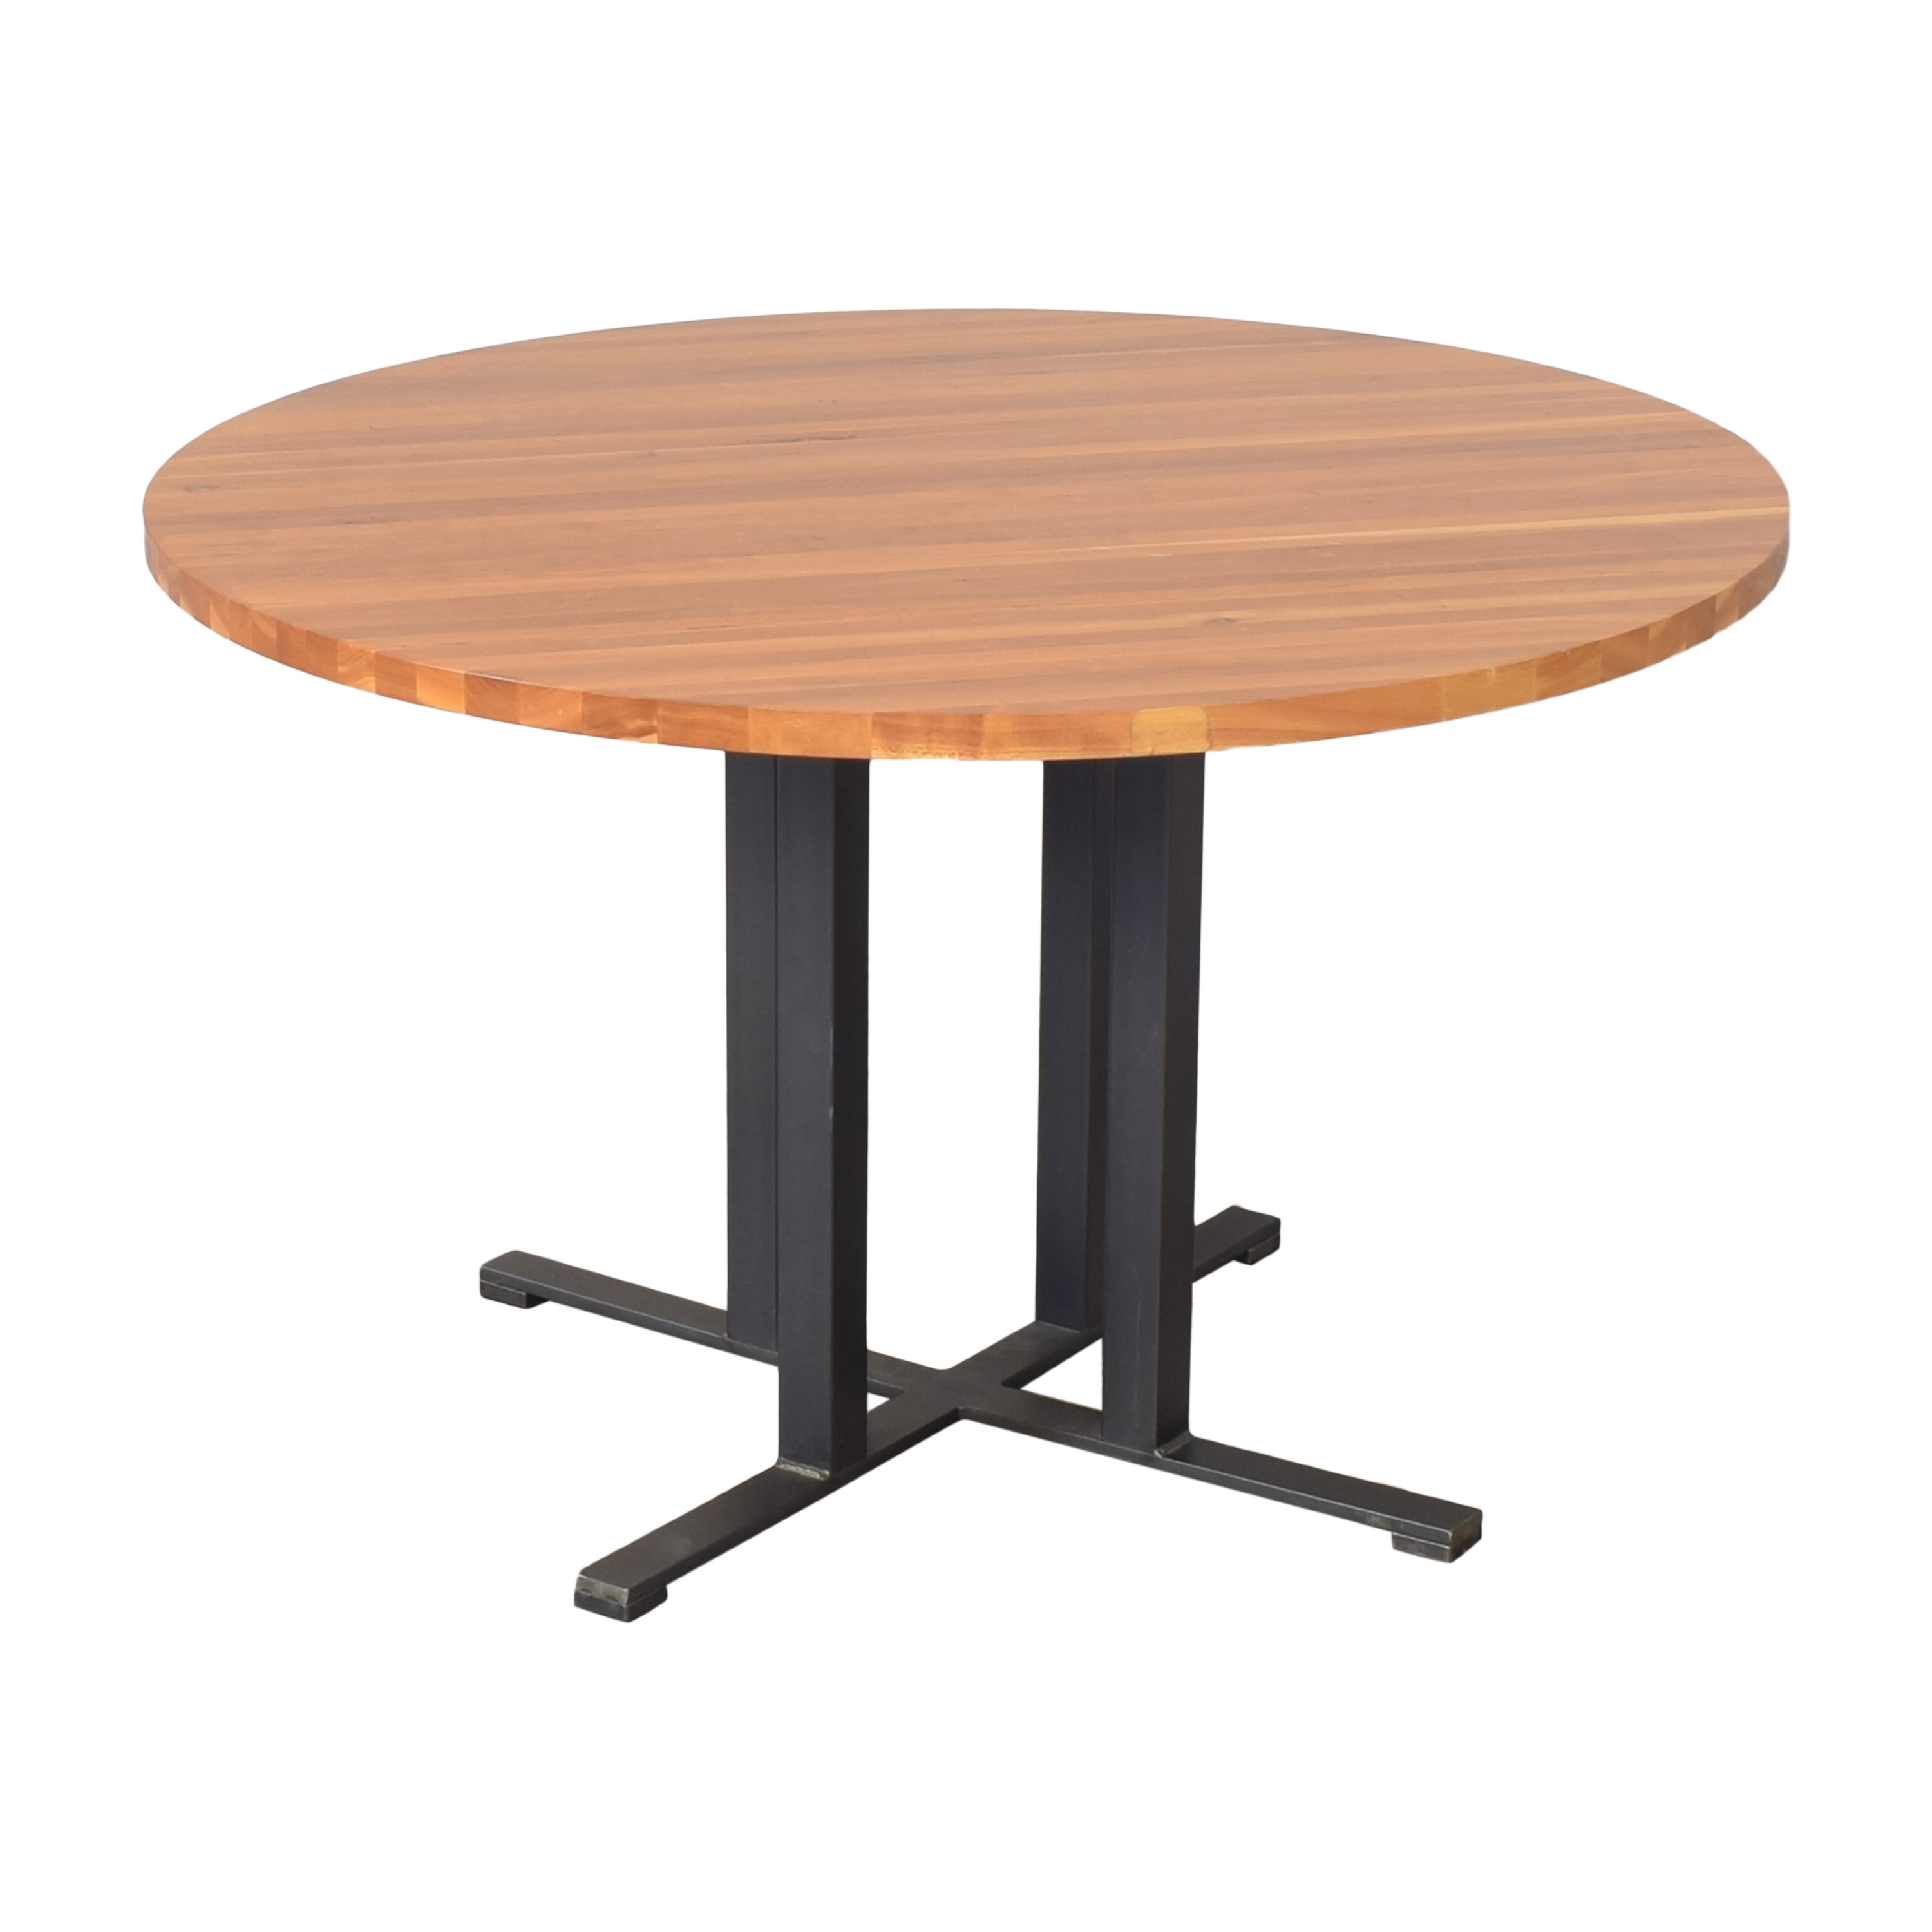 Room & Board Round Dining Table Room & Board